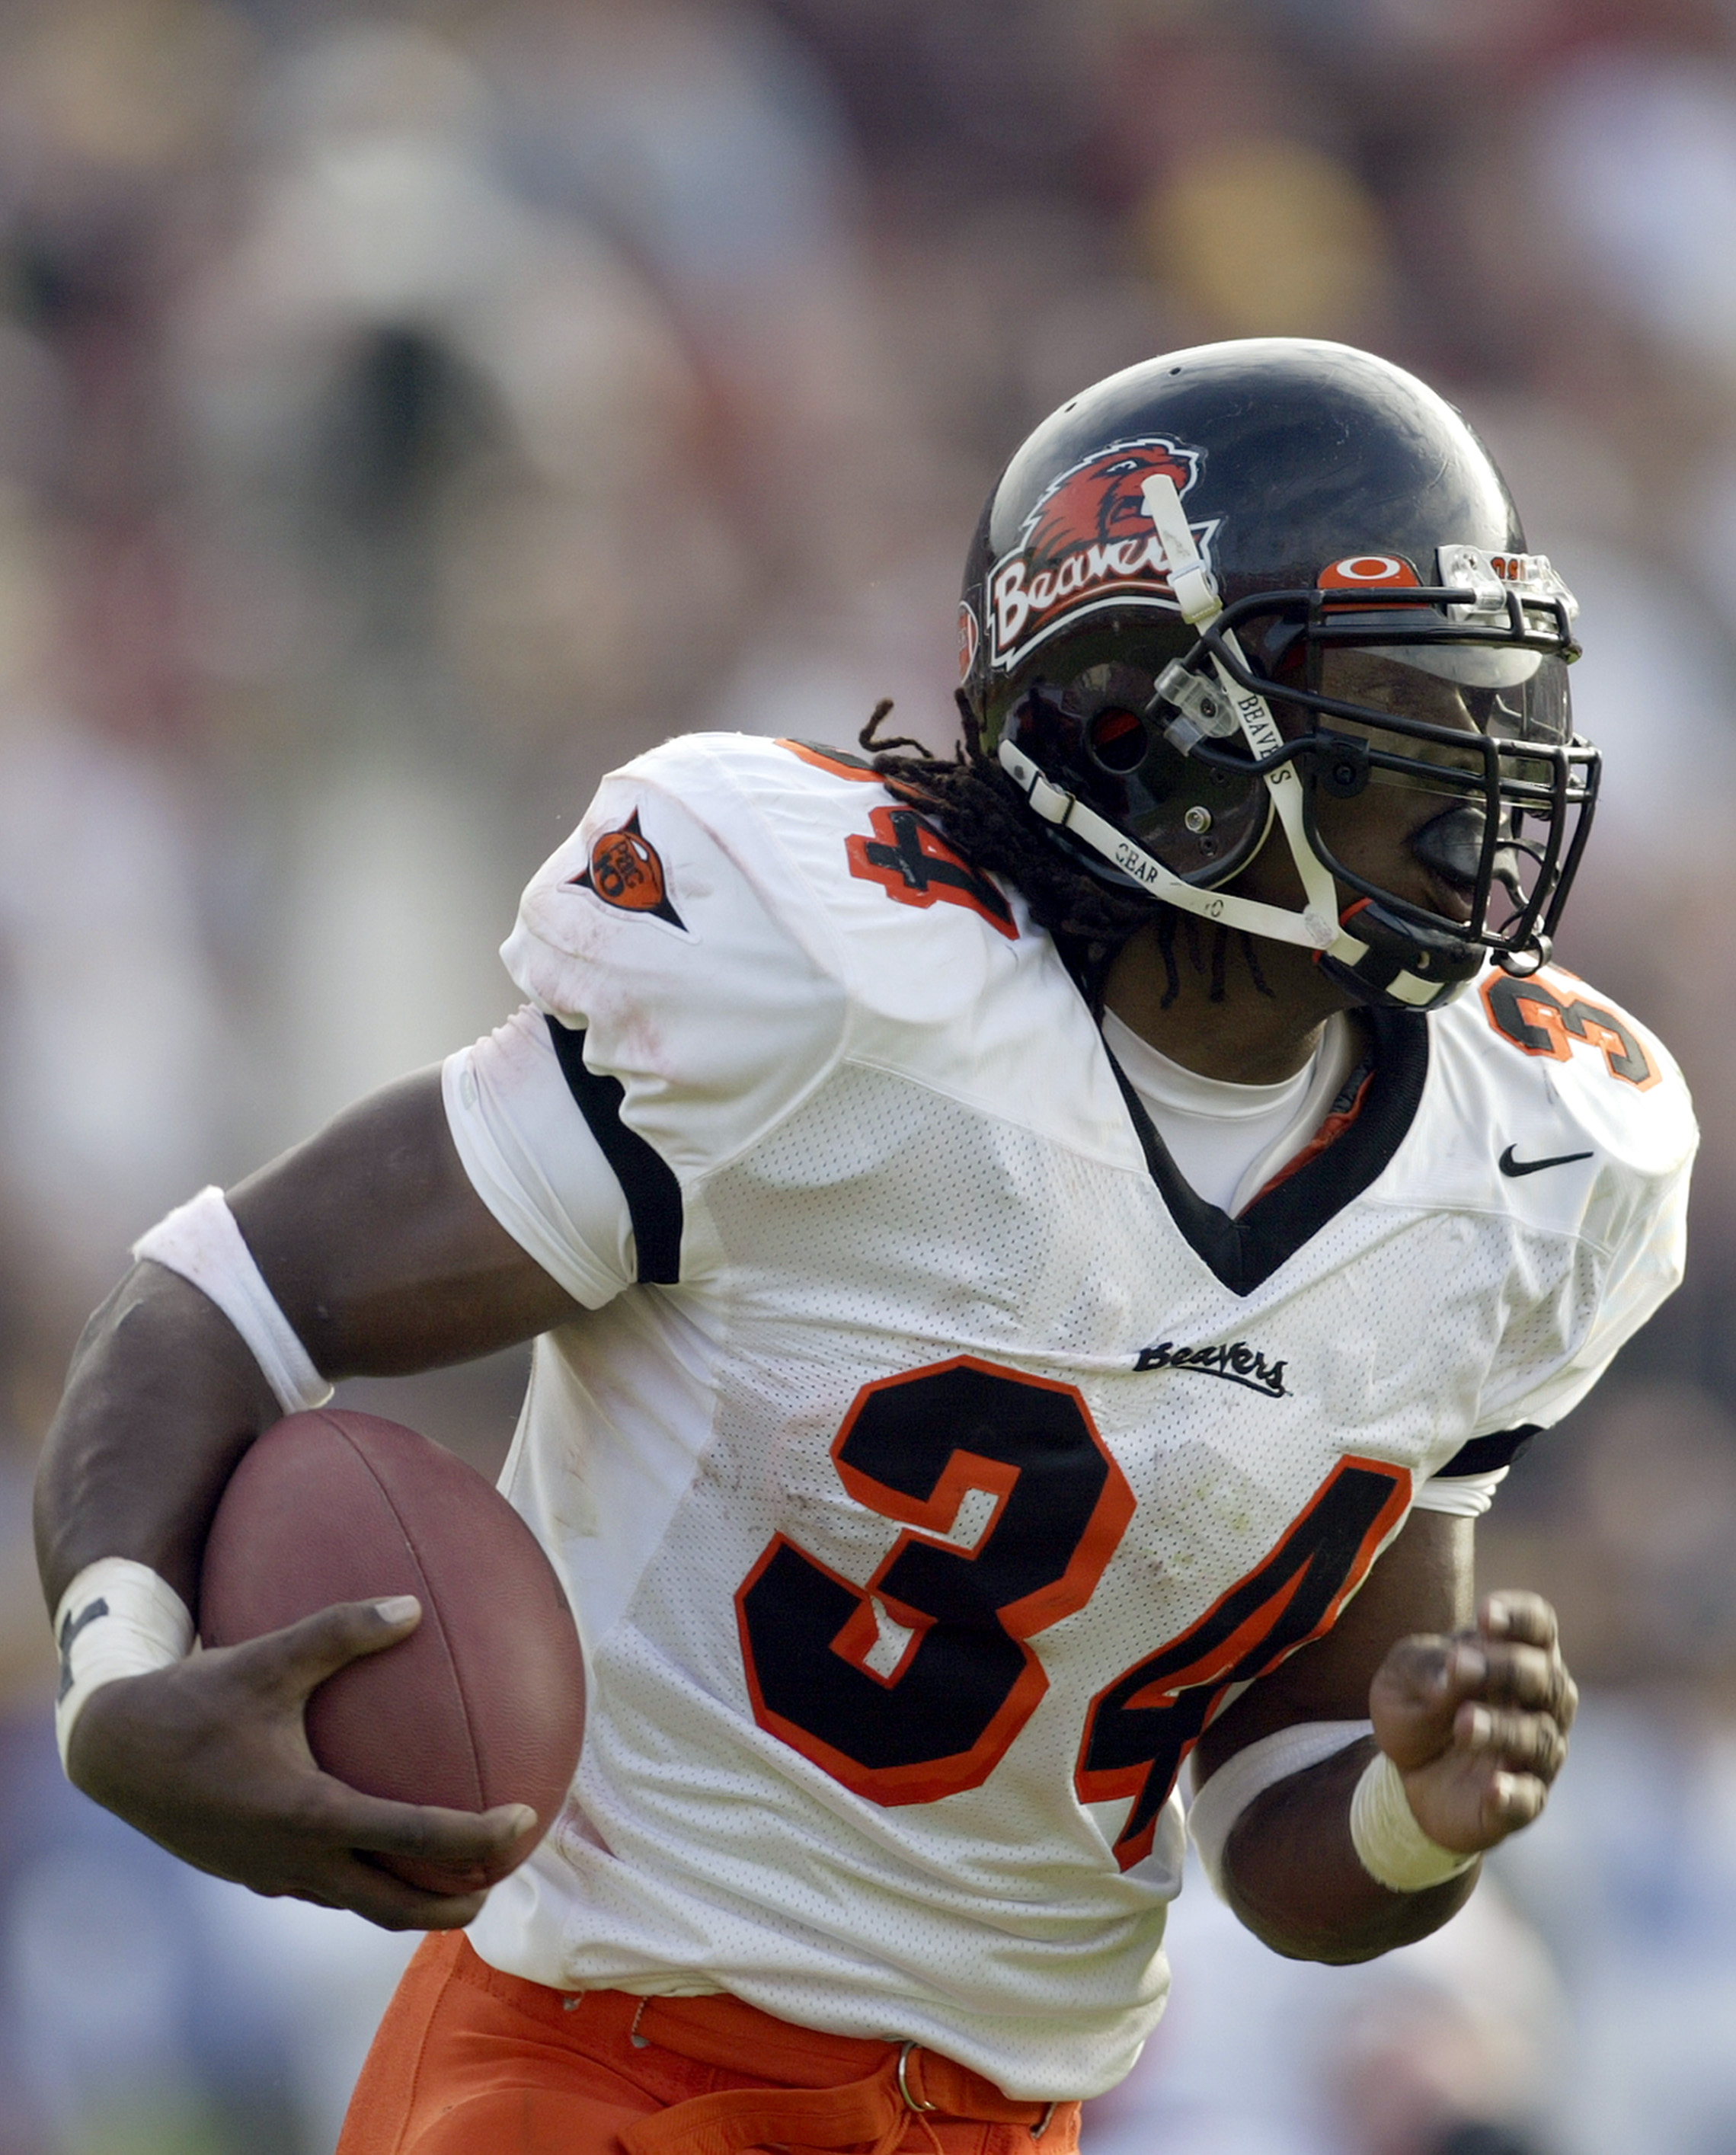 LOS ANGELES, CA - DECEMBER 6:  Running back Steven Jackson #34 of the Oregon State Beavers runs the ball during the game against the University of Southern California Trojans on December 6, 2003 at the Los Angeles Coliseum in Los Angeles, California. USC